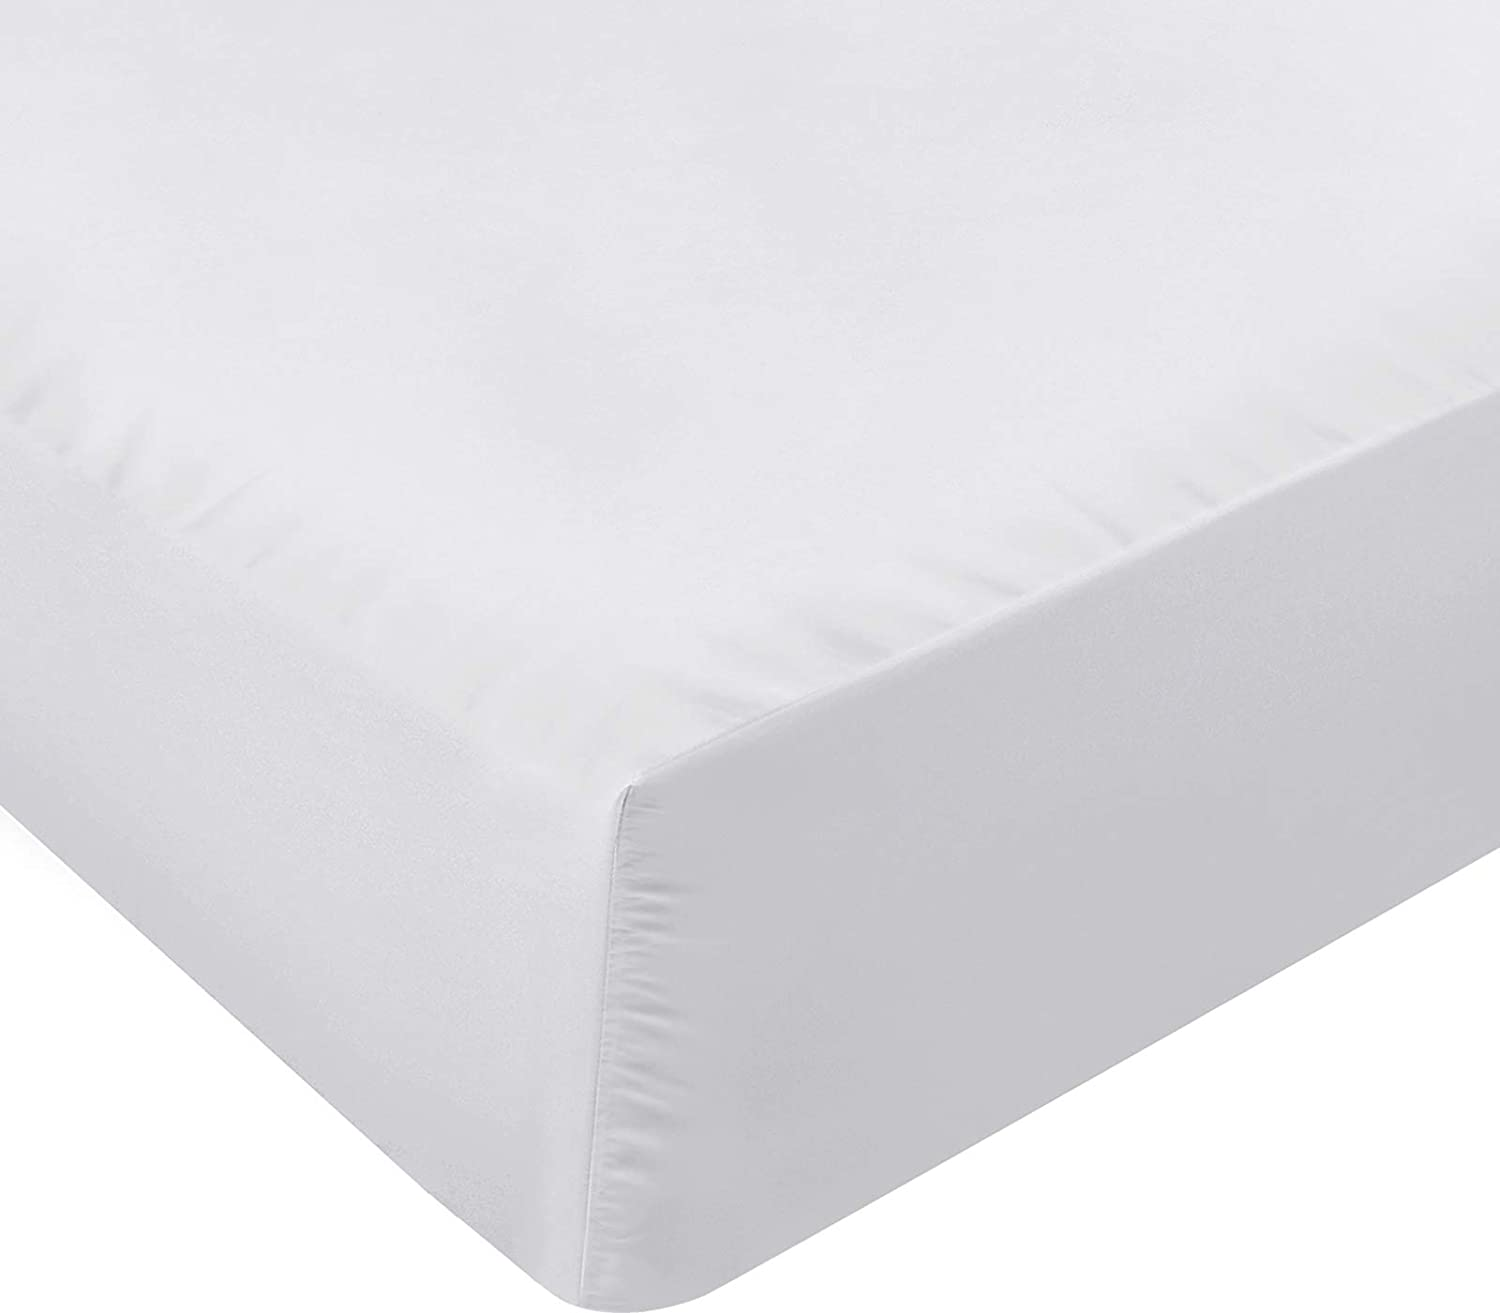 Utopia Bedding King Fitted Sheet (White)